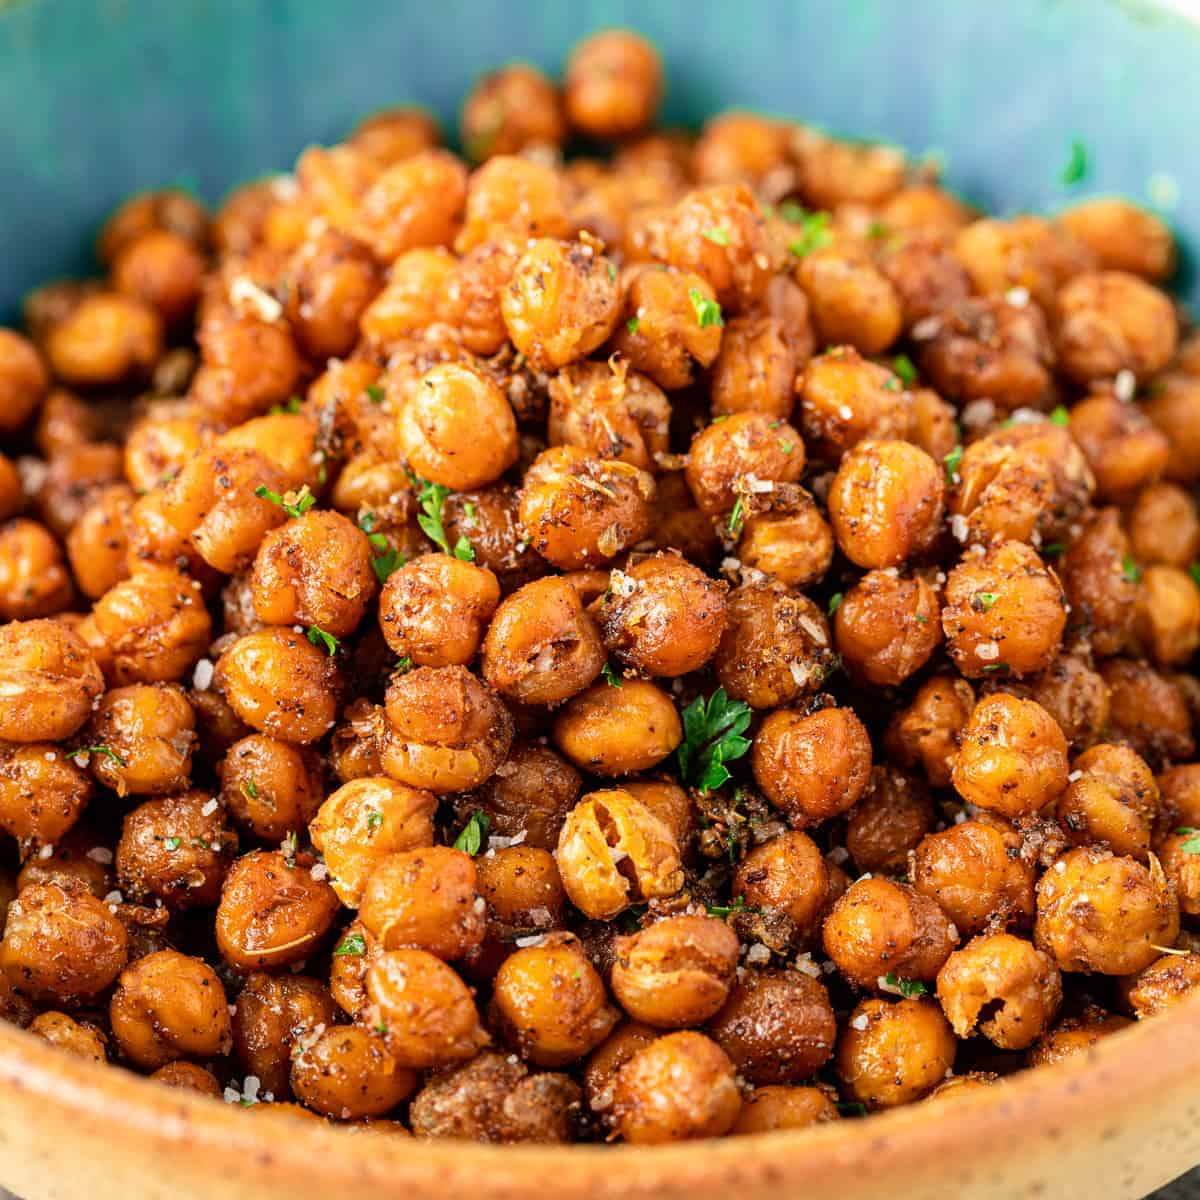 close up image of roasted chickpeas